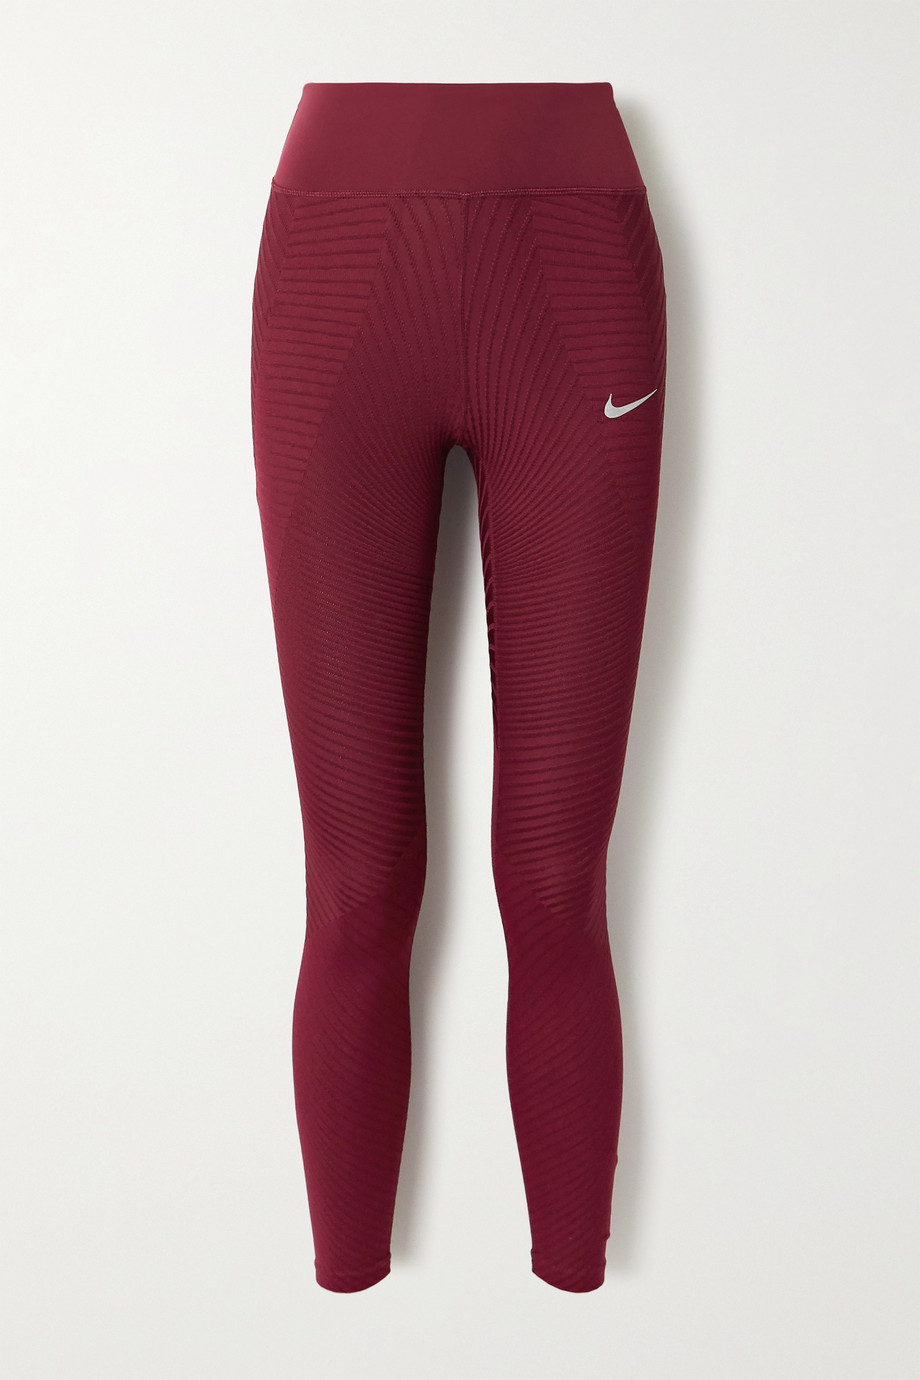 NIKE Epic Luxe textured Dri-FIT leggings